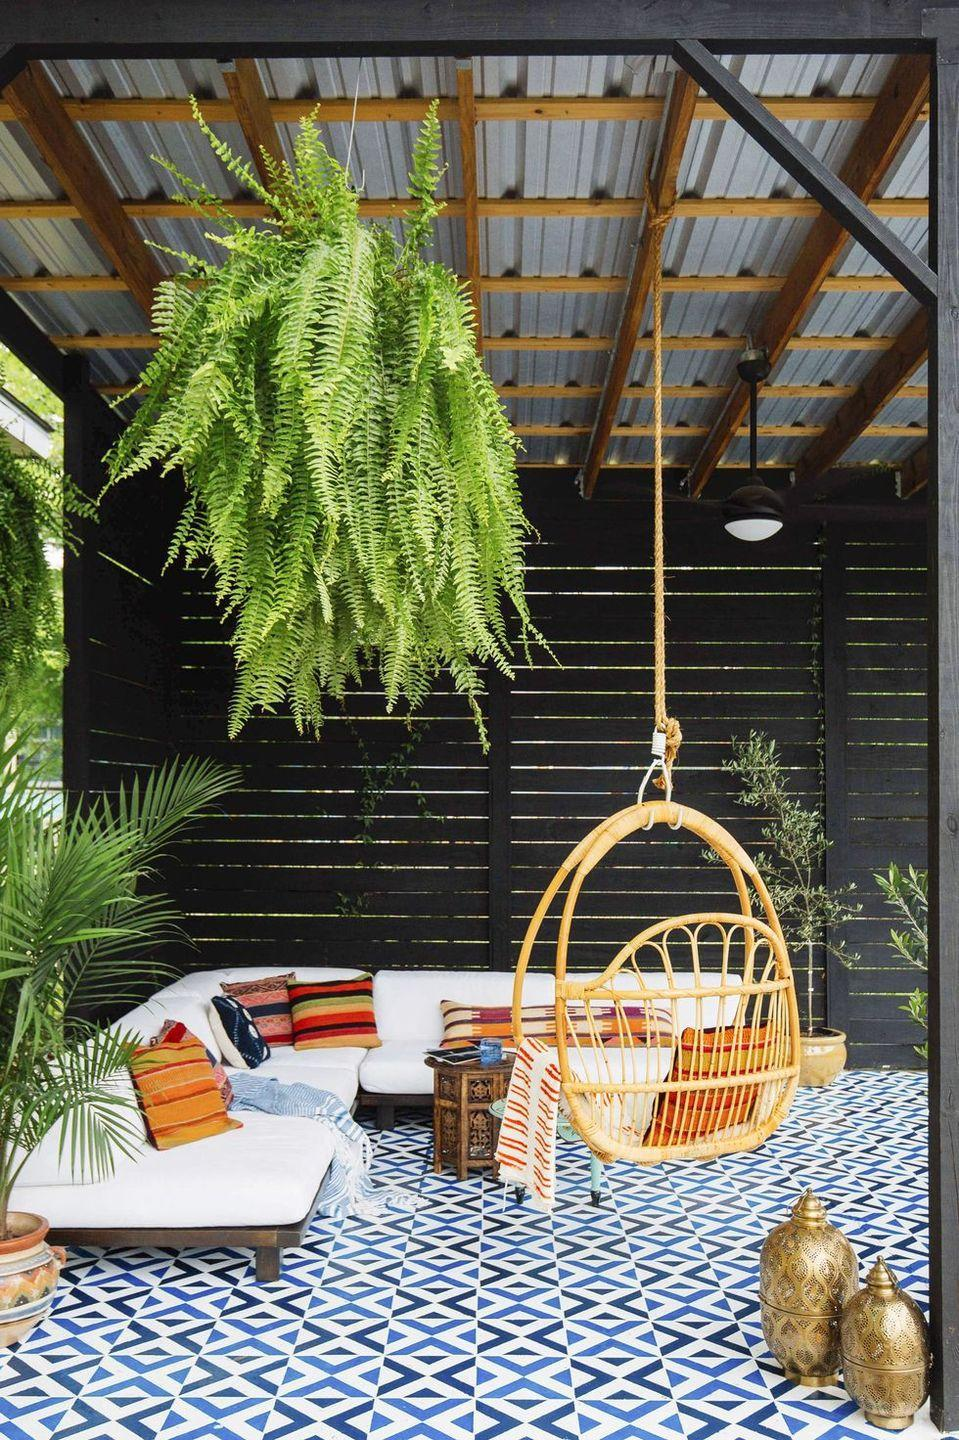 <p>Let your geometric tiling or outdoor rug make a statement by hanging a swing chair from the ceiling or deck cover. Not to mention that this boho-inspired hanging chair is ideal for curling up with a summer read or sipping on a seasonal cocktail. </p>